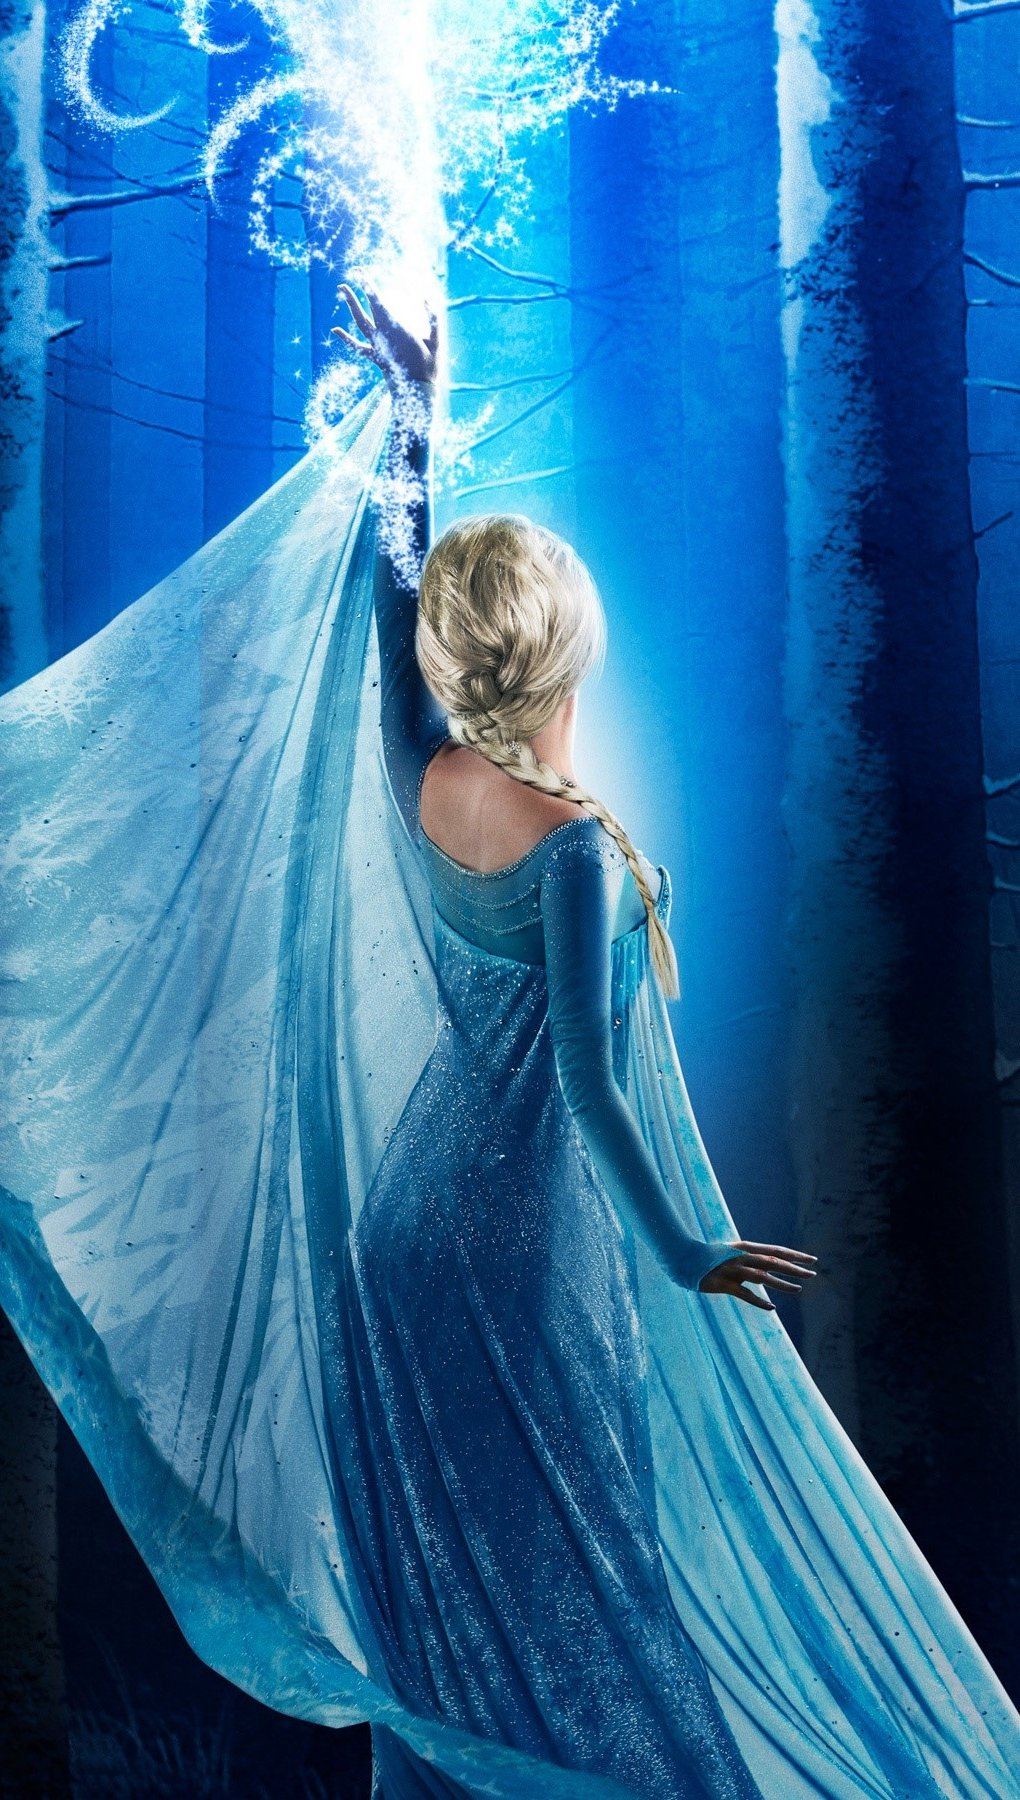 Wallpaper Elsa in Once upon a time Vertical